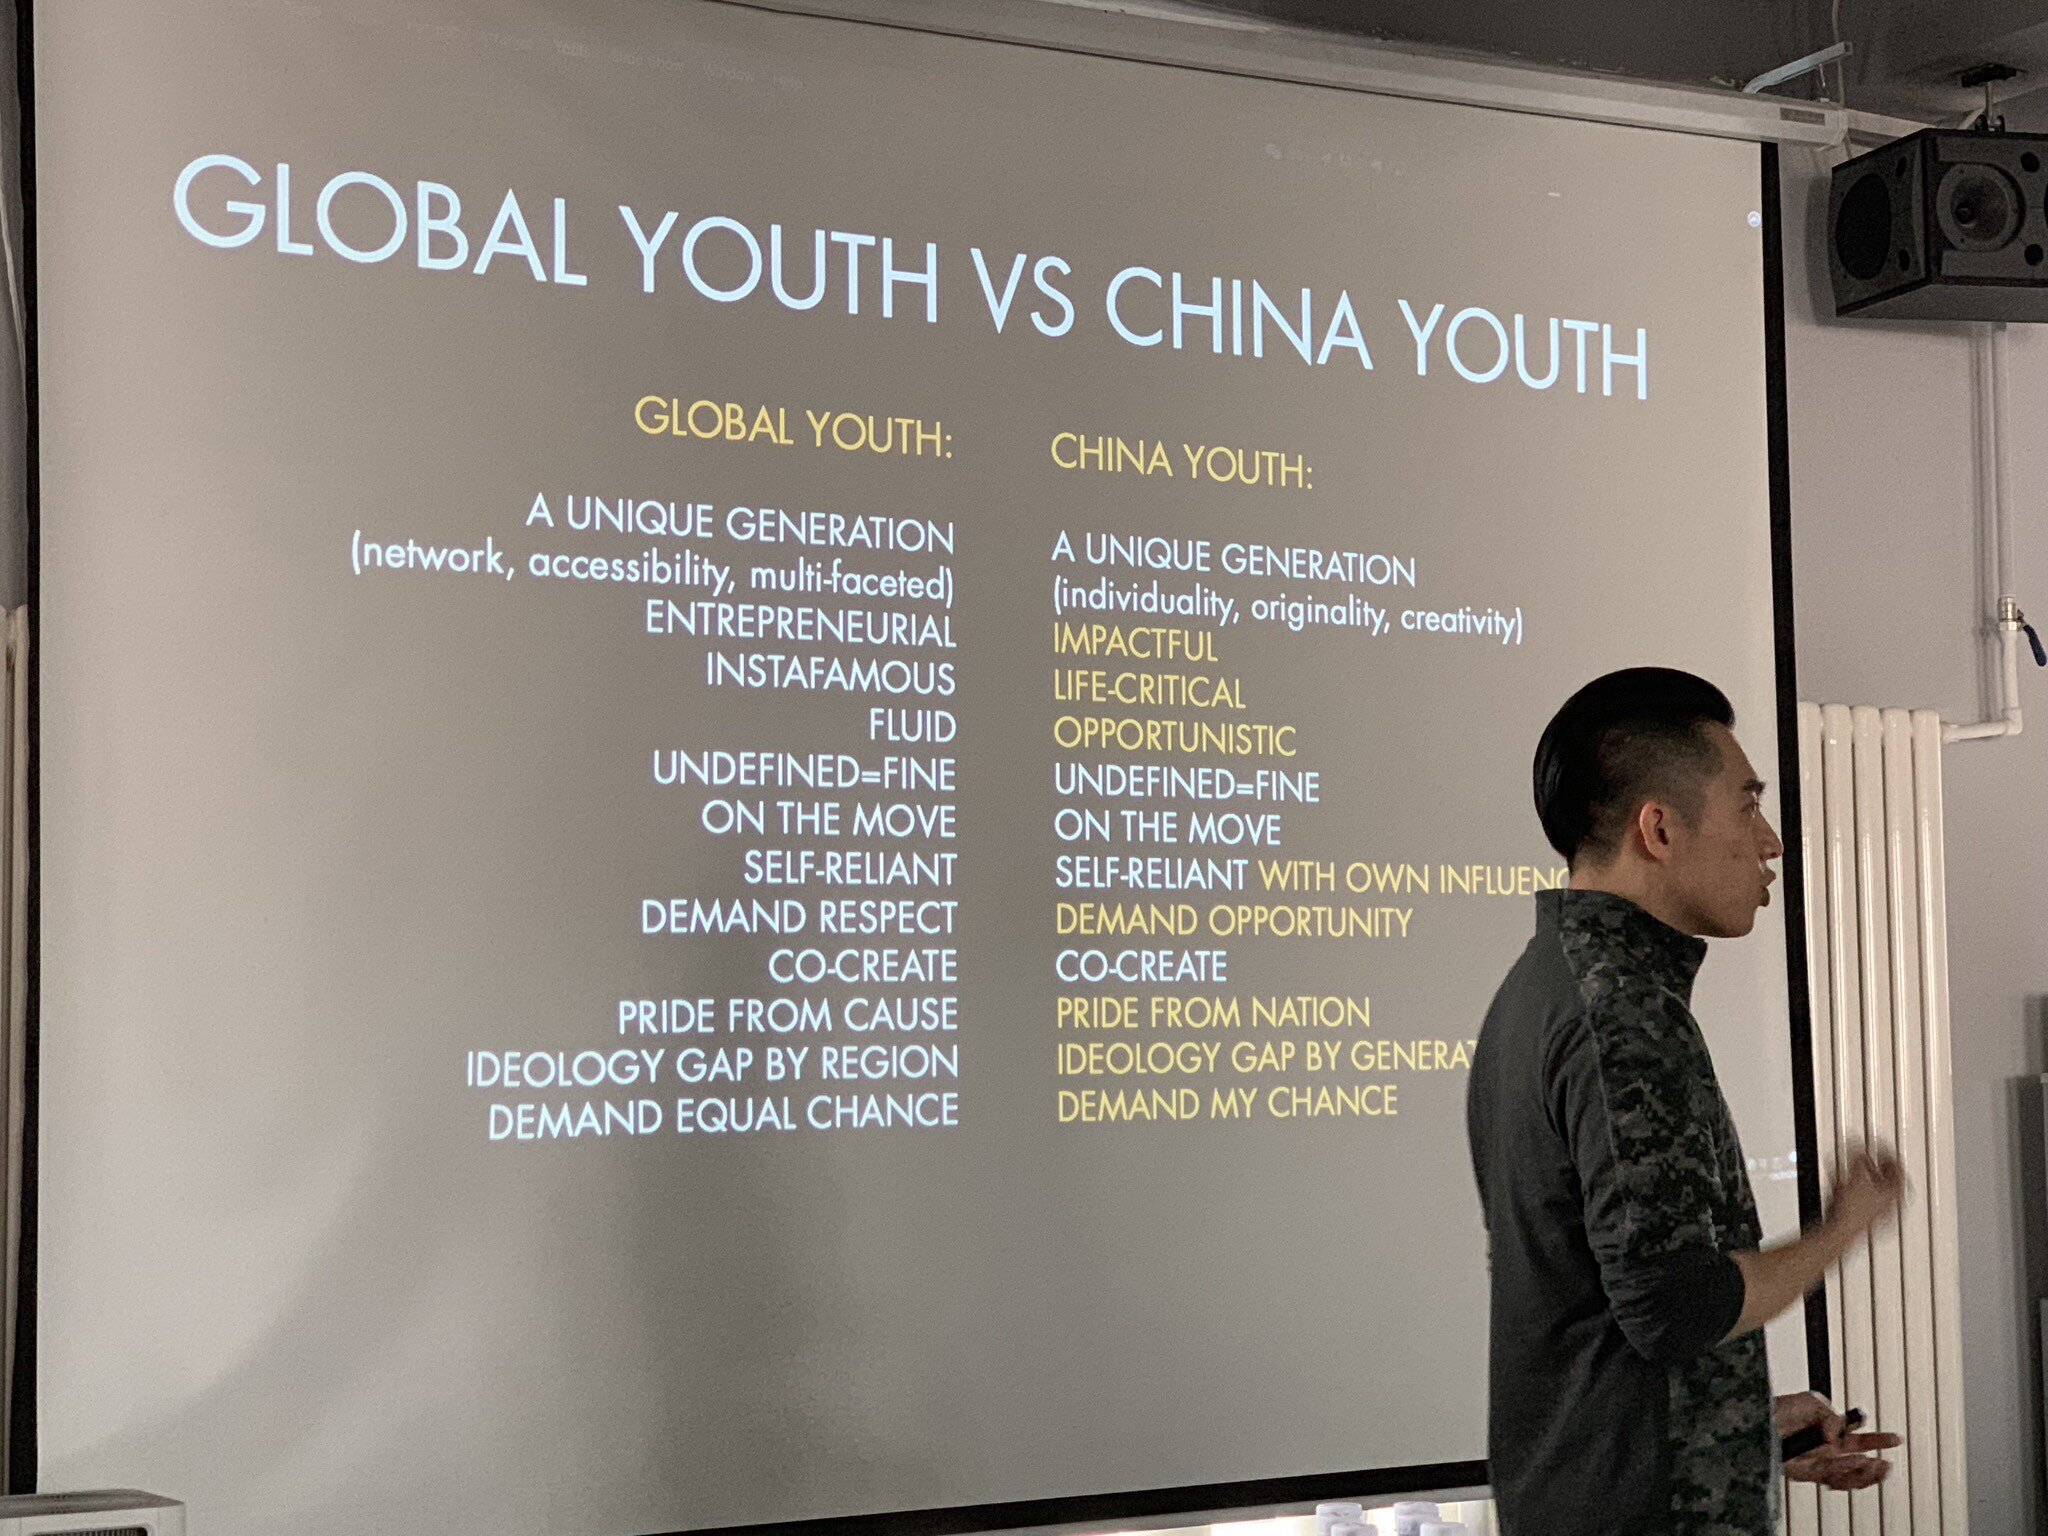 Kevin Lee of China Youthology explaining the difference between global youth cultures and the youth culture in China.